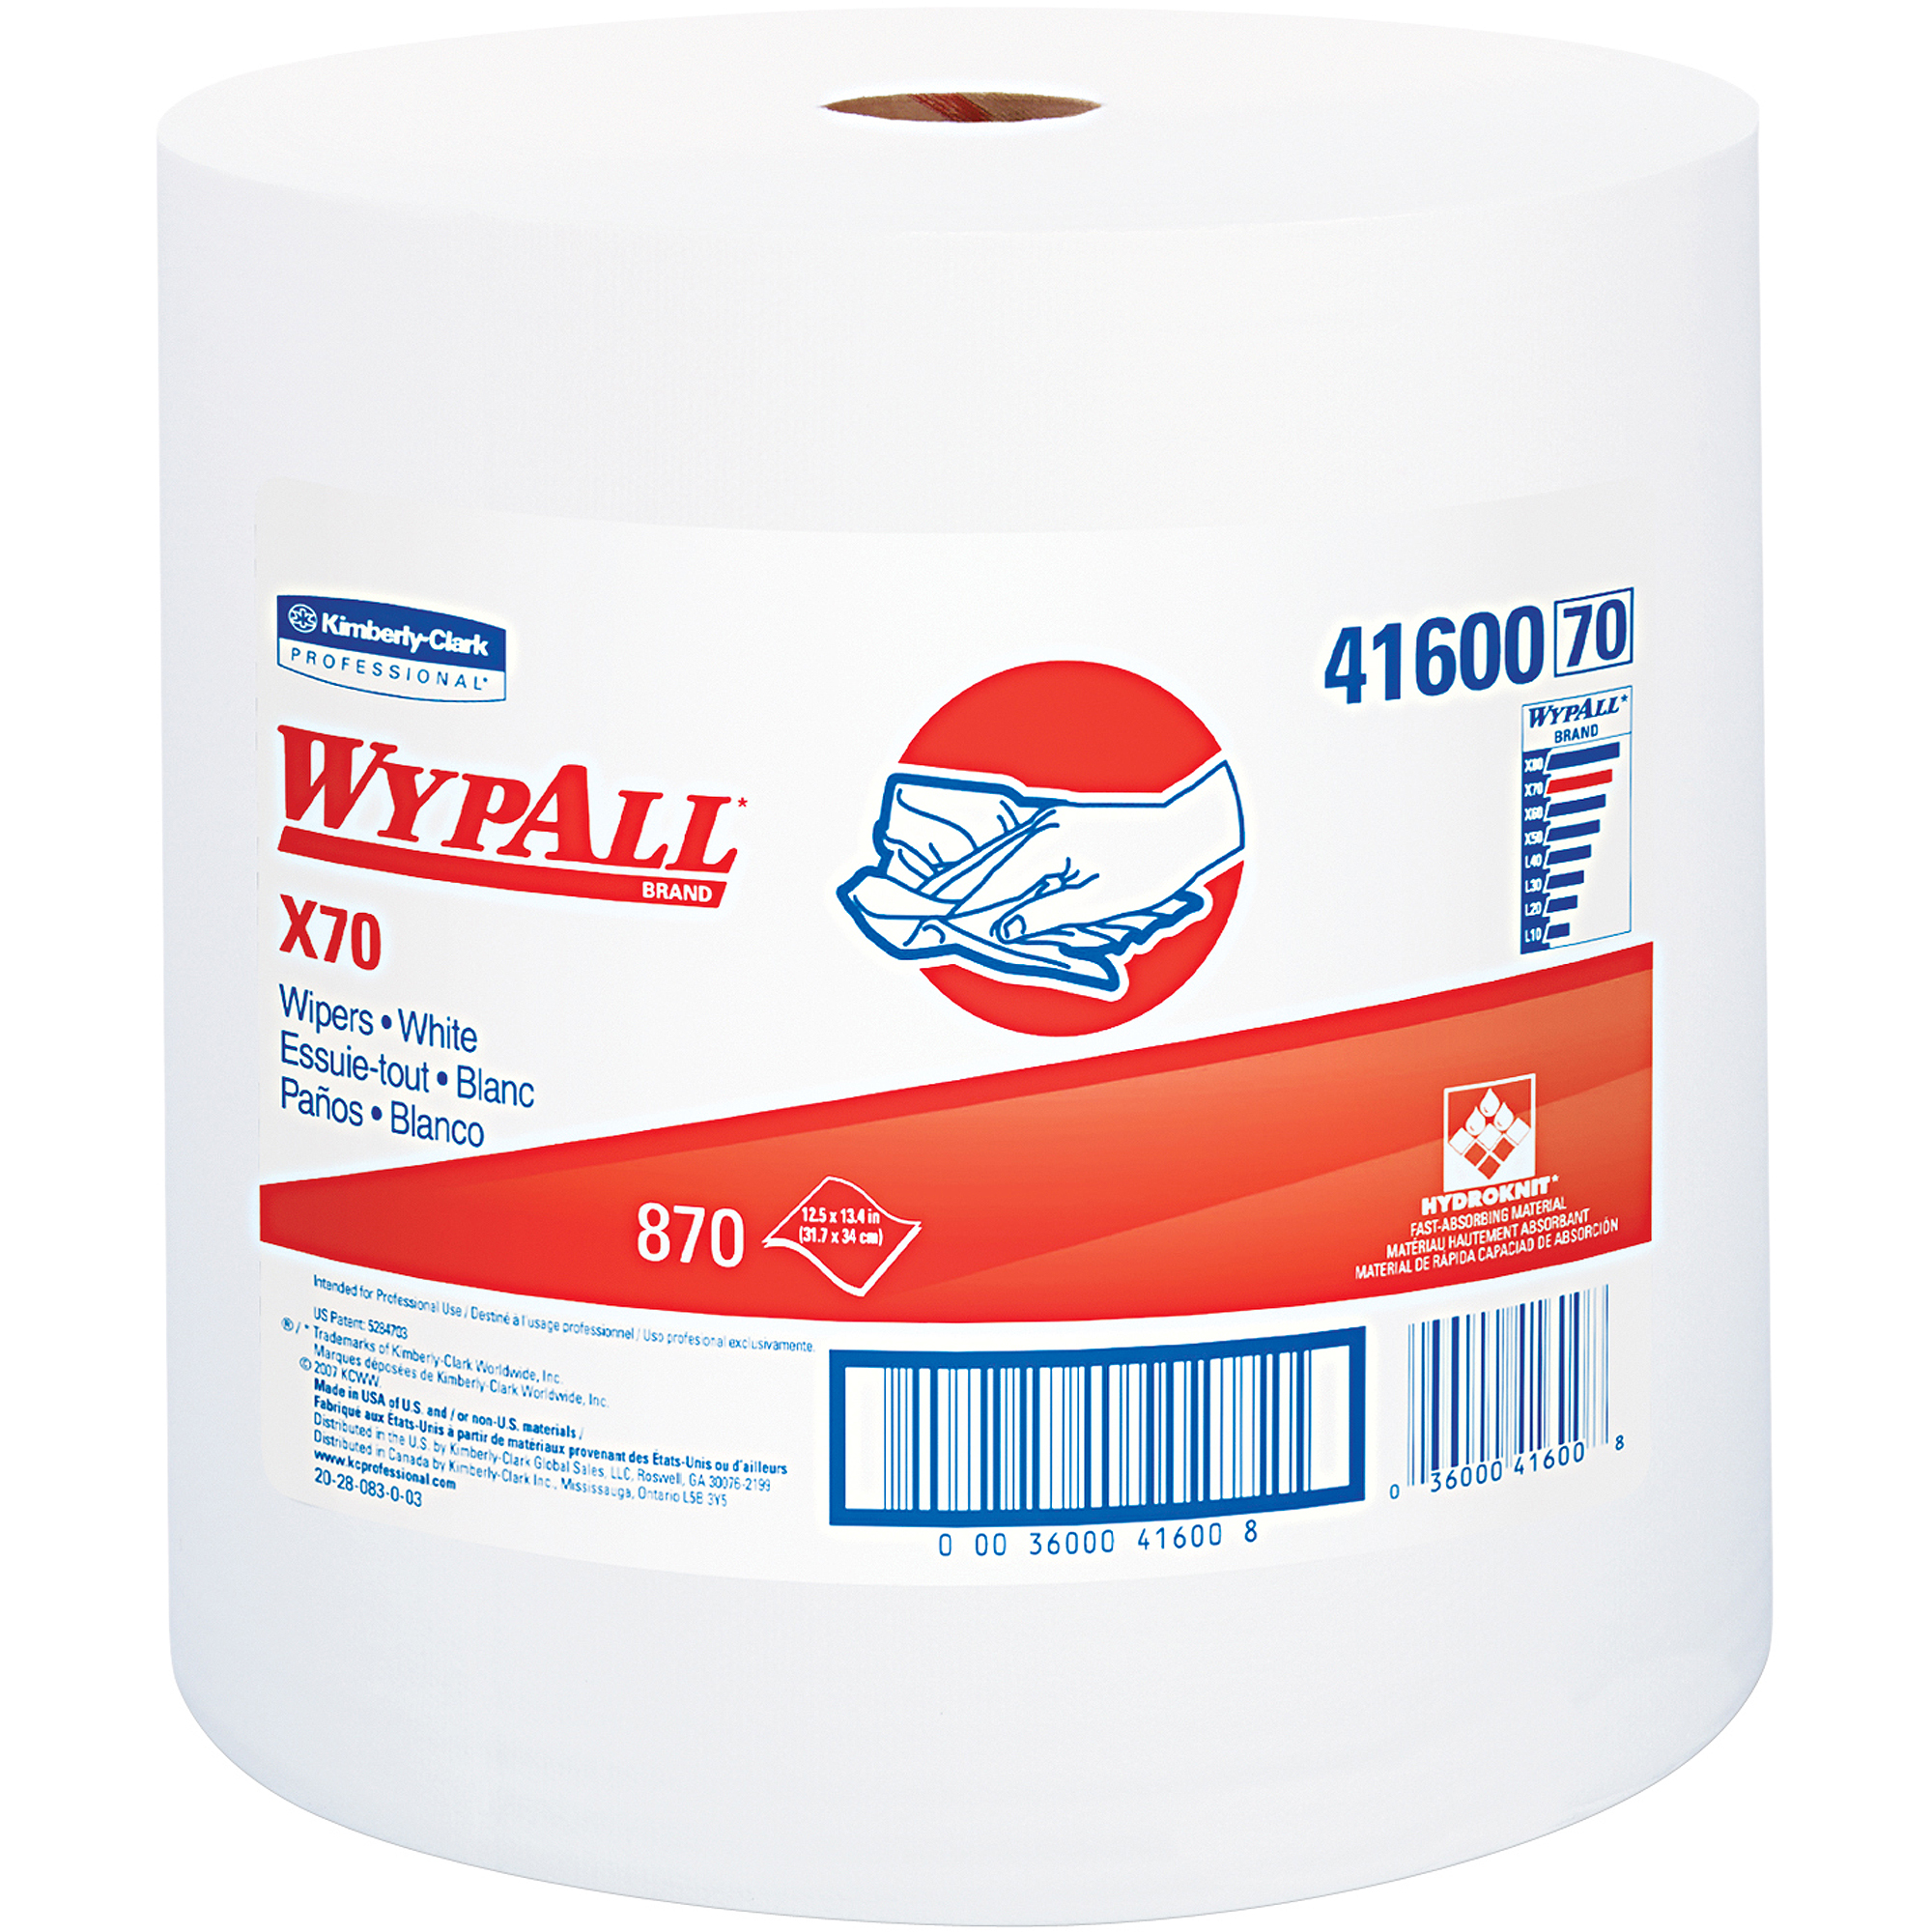 Kimberly-Clark Professional Wypall X70 Wipers Jumbo Roll, 870 sheets